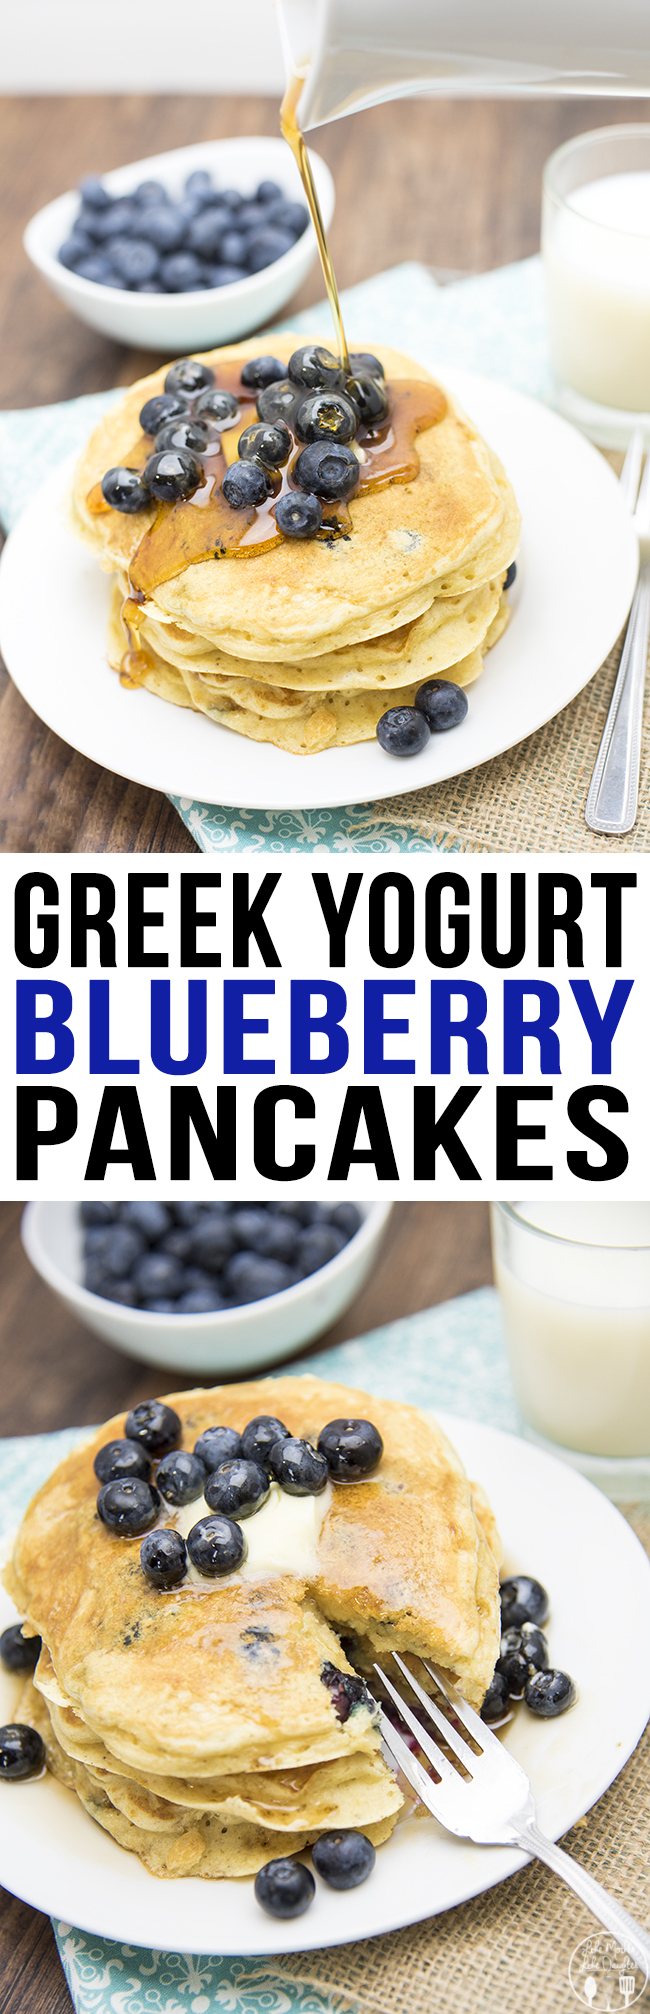 Greek Yogurt Blueberry Pancakes - These are the best pancakes ever! Packed full of flavor and even good for you too! Perfect for breakfast or dinner!